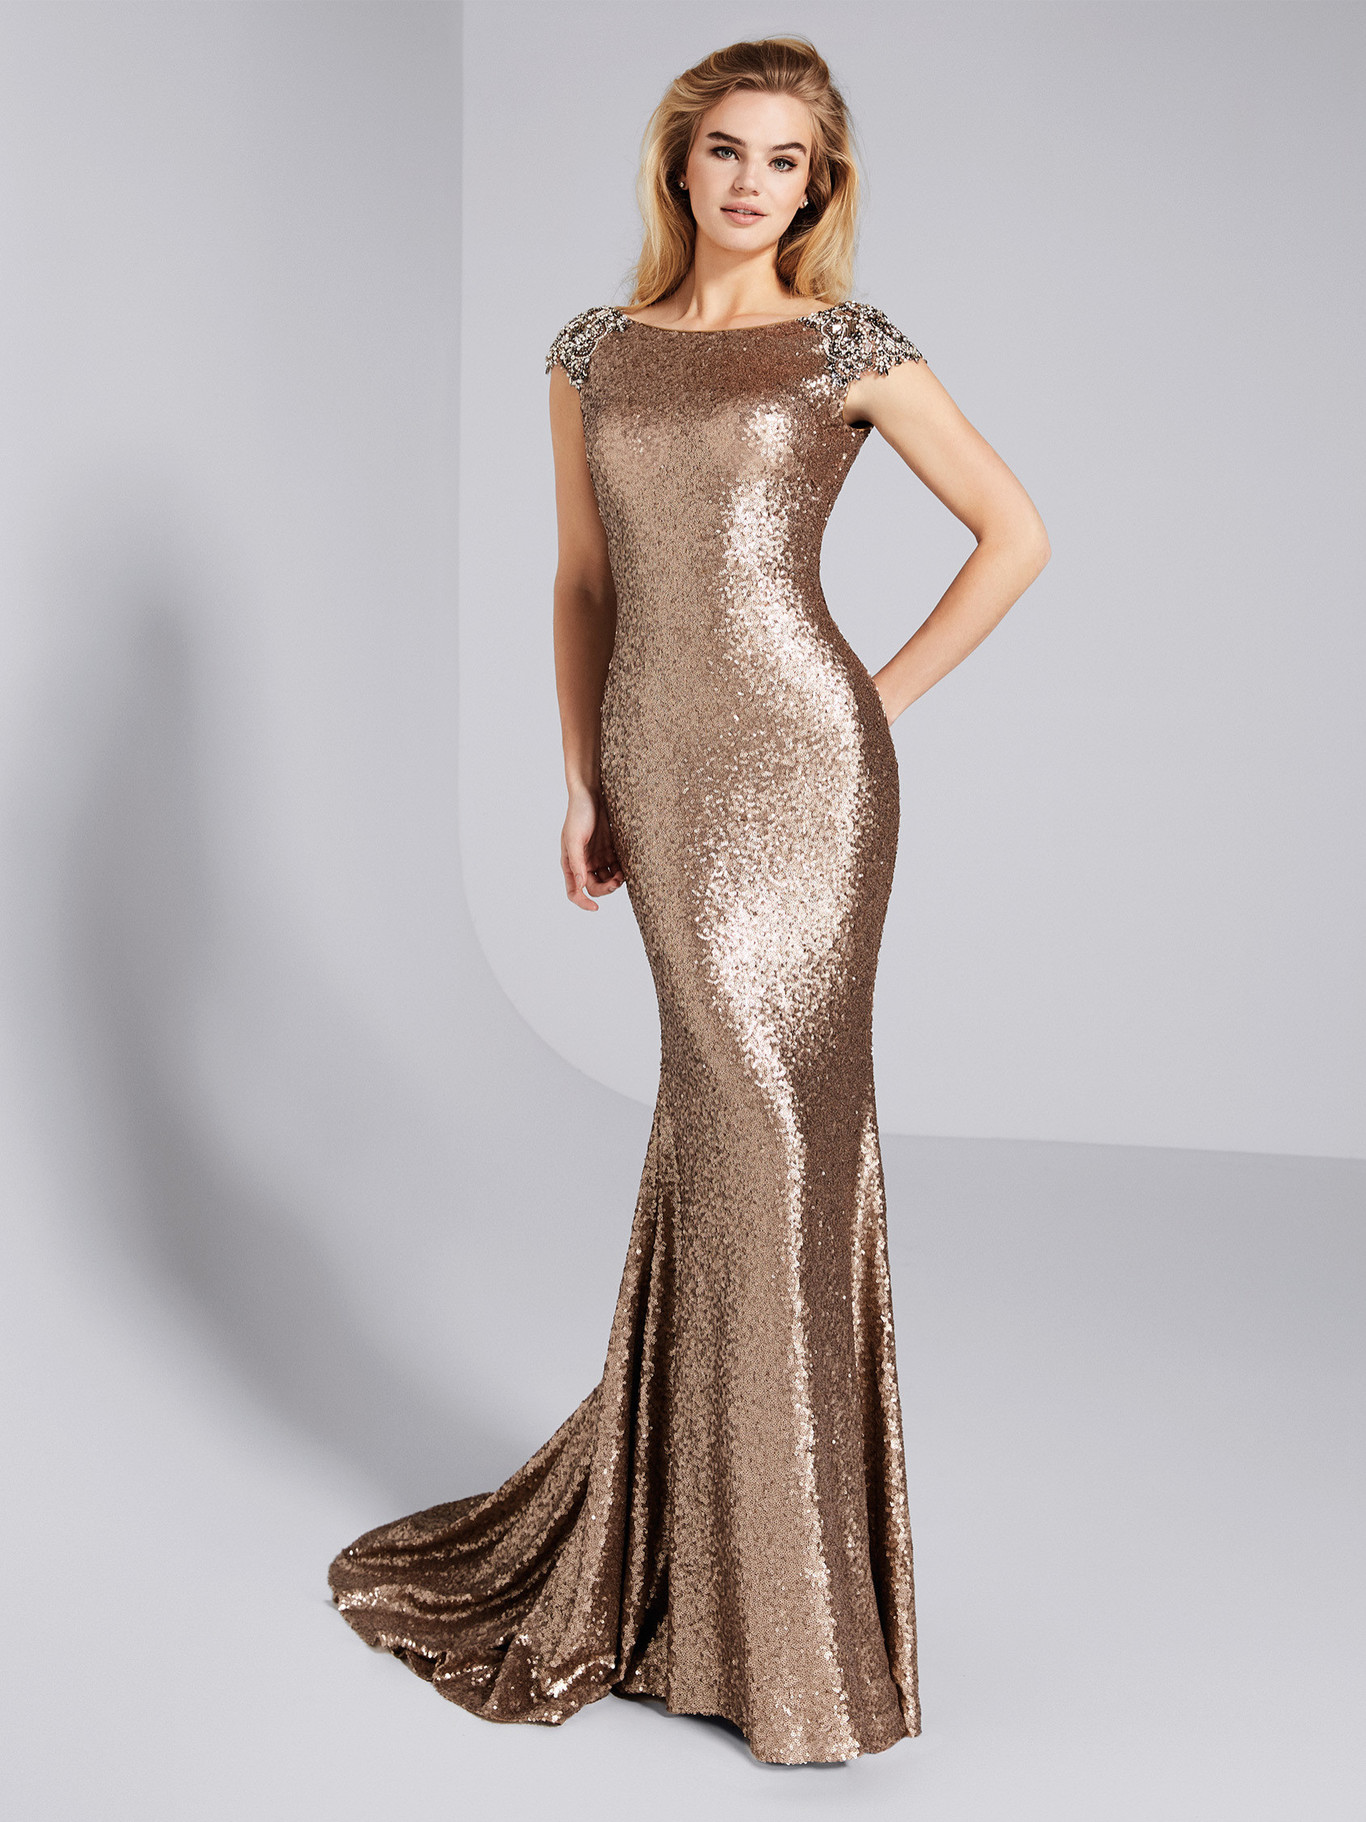 30507e0271eb 17 Christmas dresses that you will wear again at weddings - Today ...